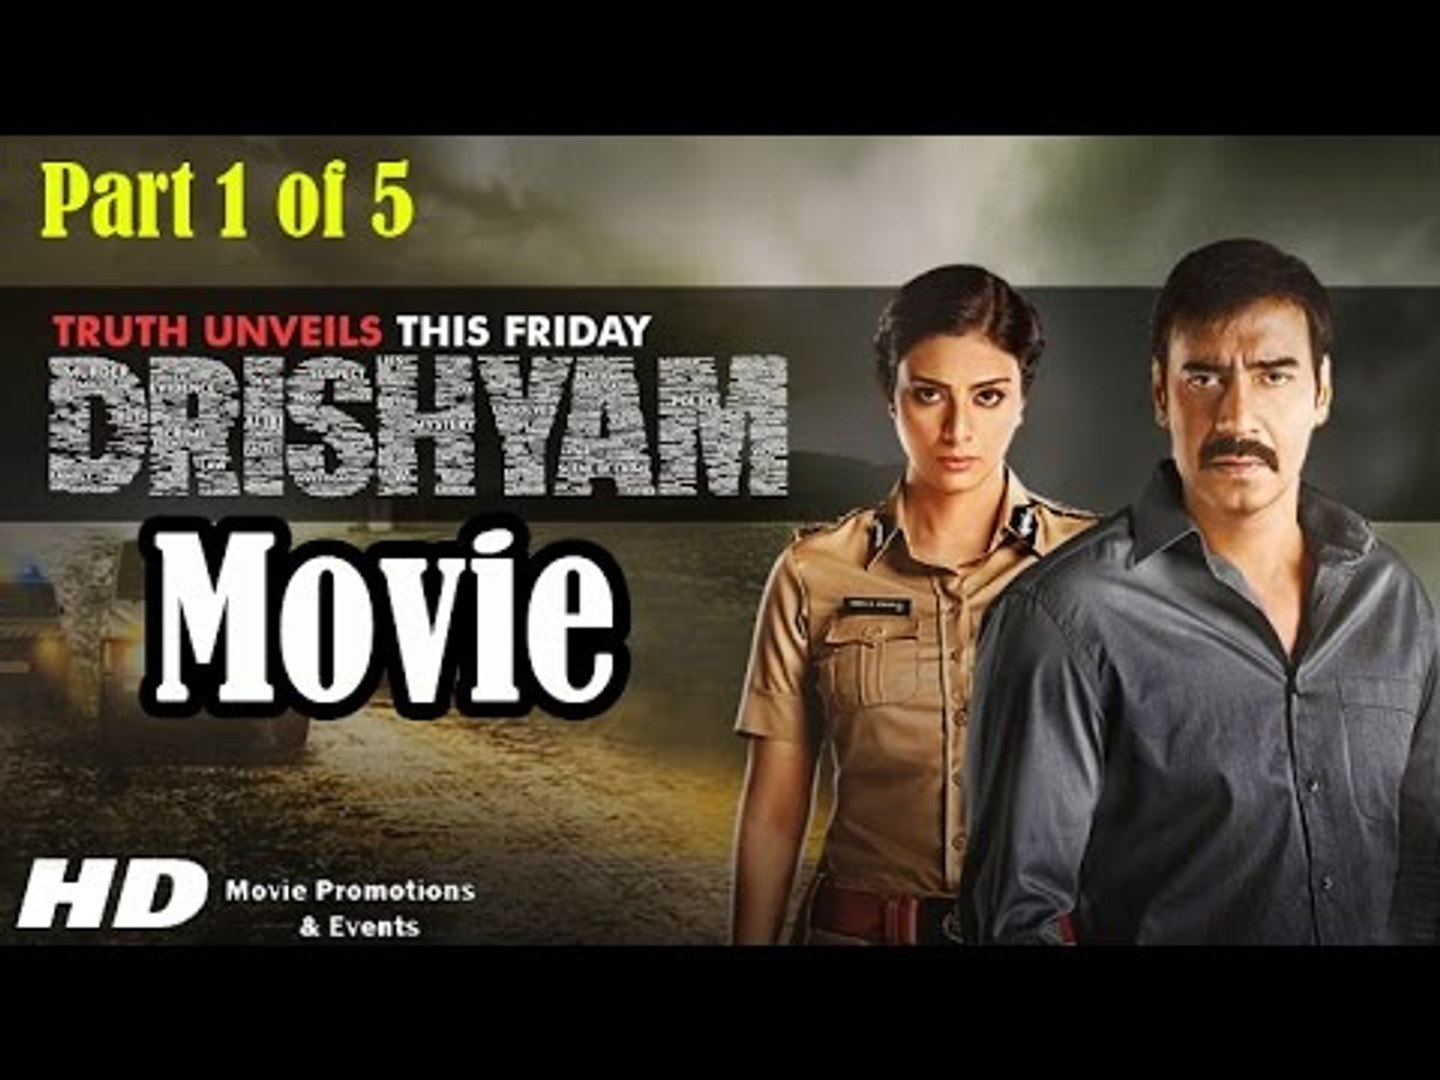 Drishyam Full Movie 2015 Part 1 Of 5 Ajay Devgan Tabu Shriya Saran Full Movie Promotions